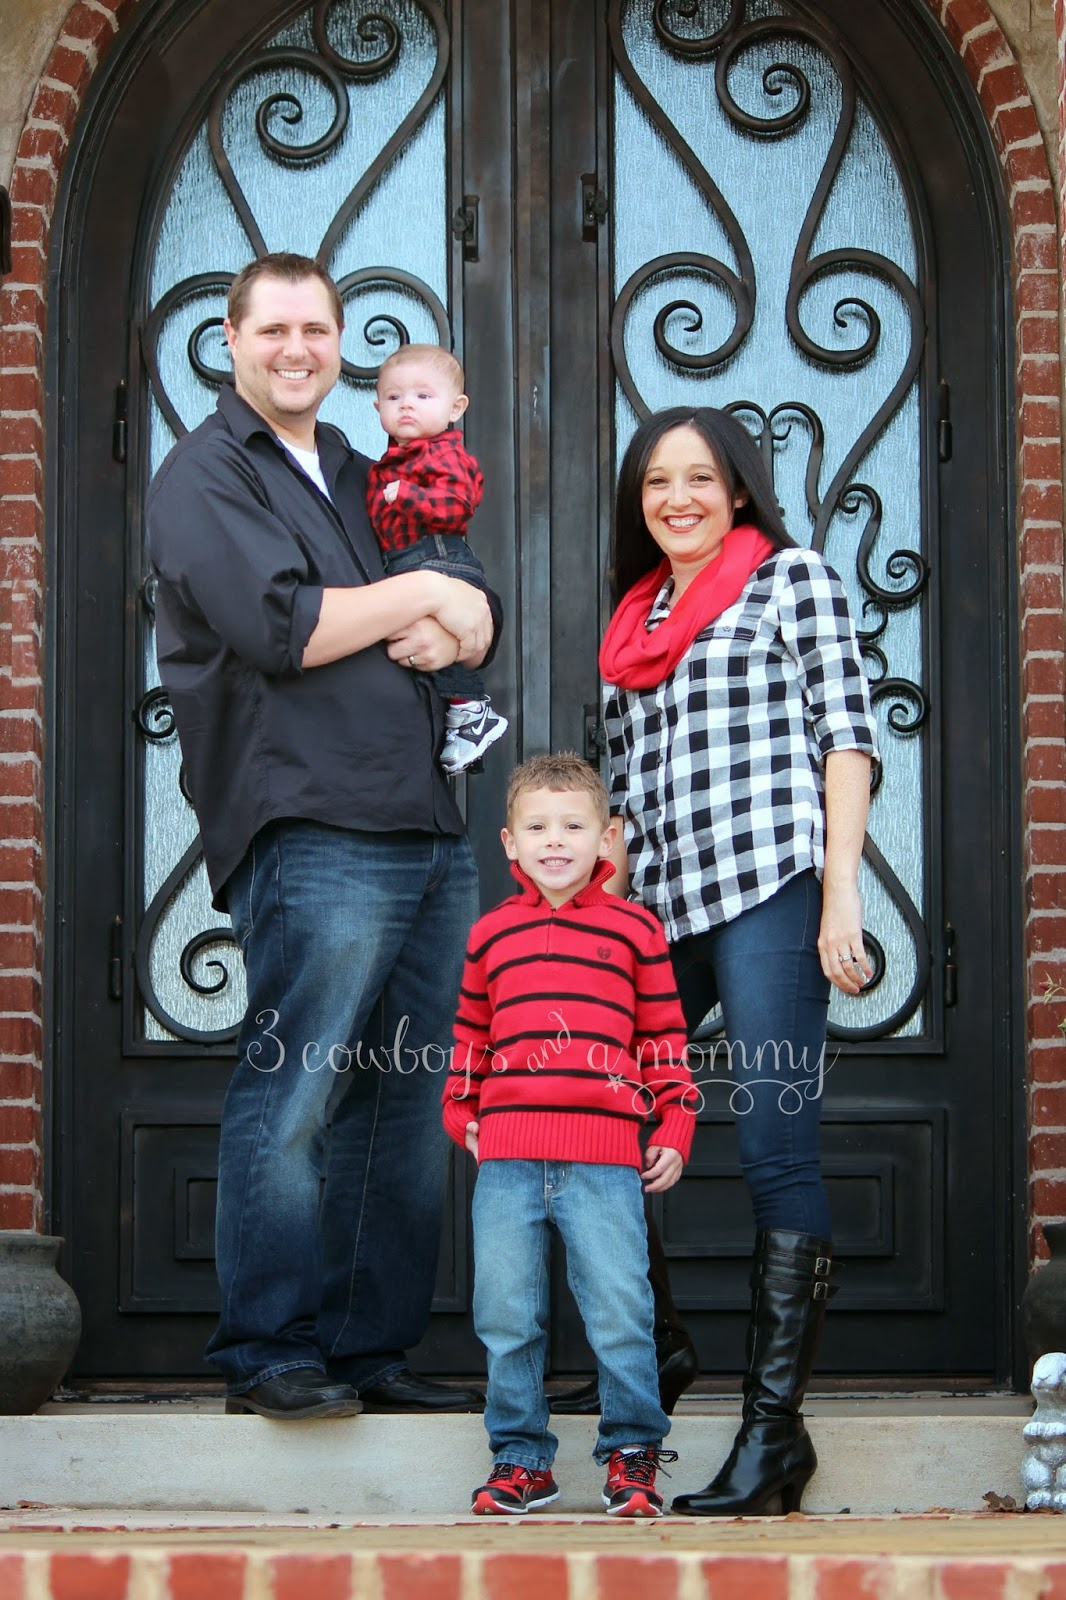 Family Of 4 Photo Pose Ideas Webb family photos